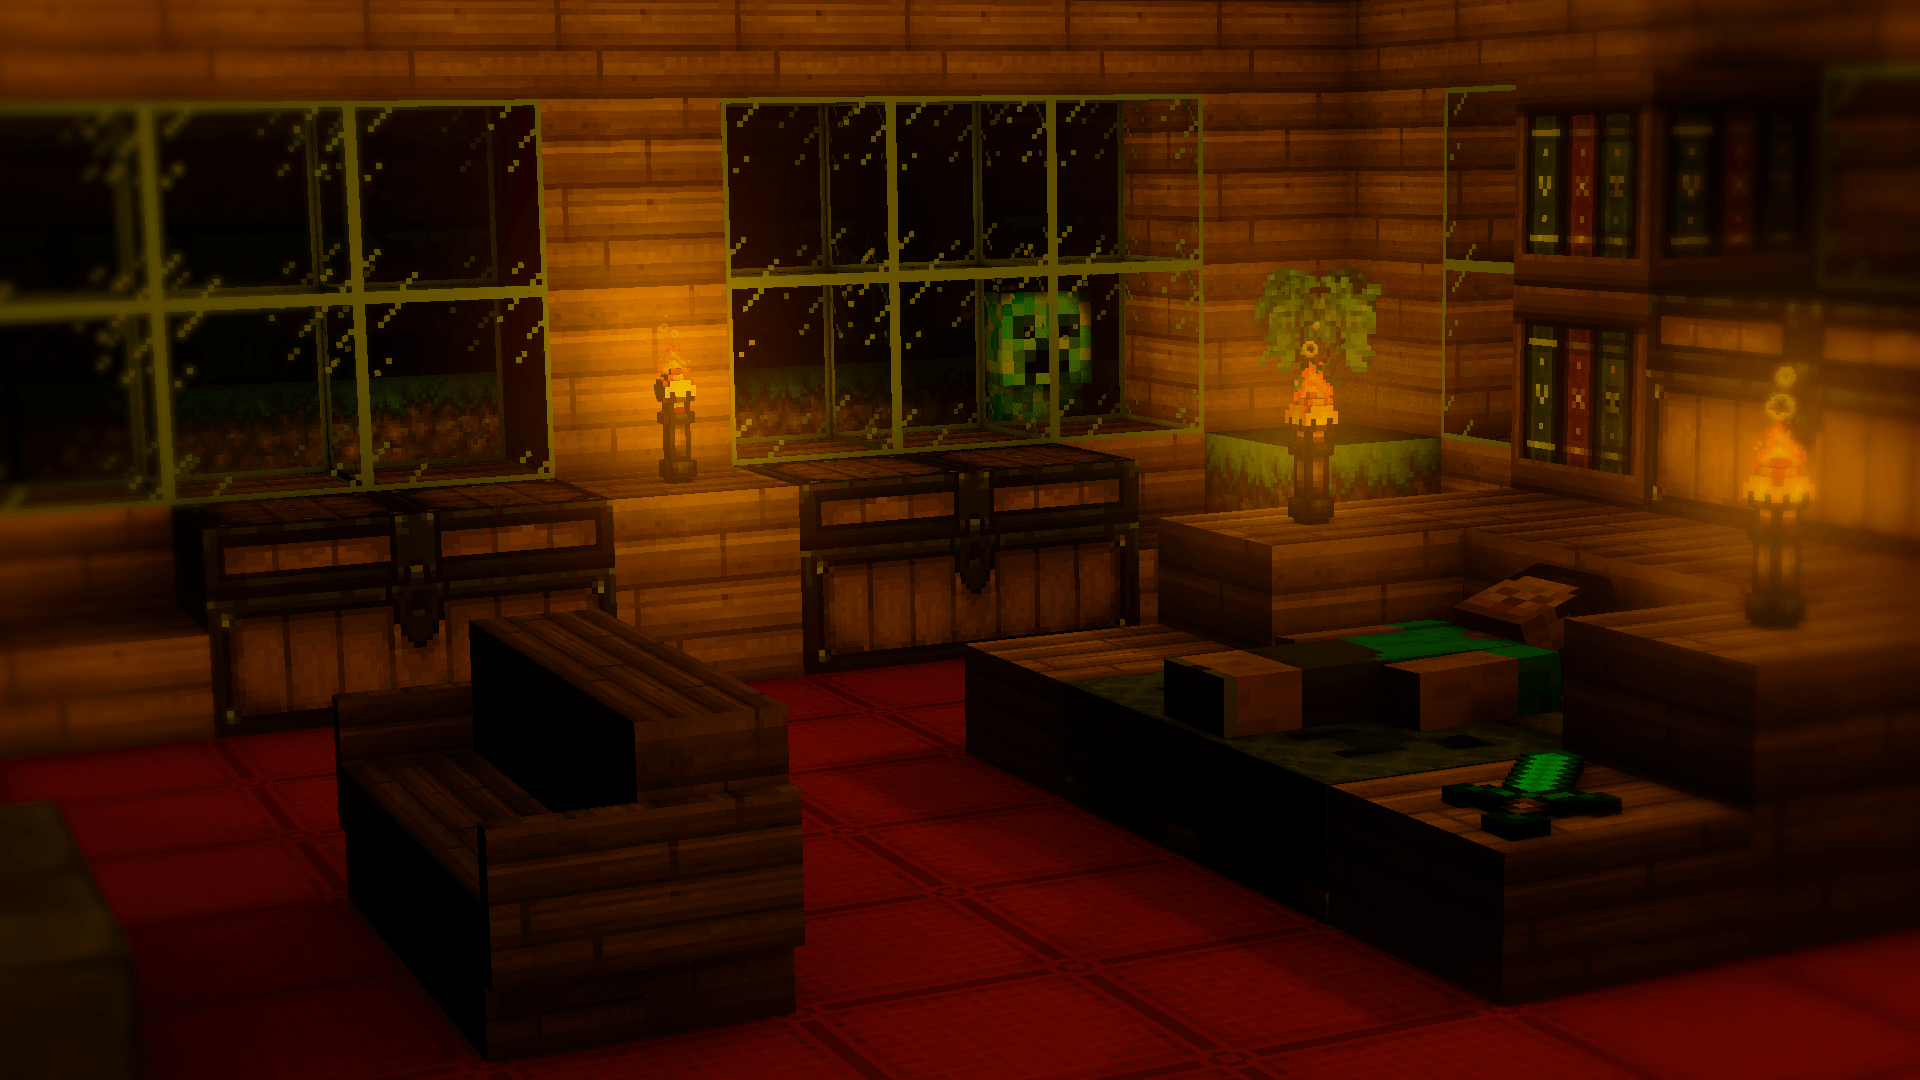 minecraft_3d_room_by_theevollutions-d48frup